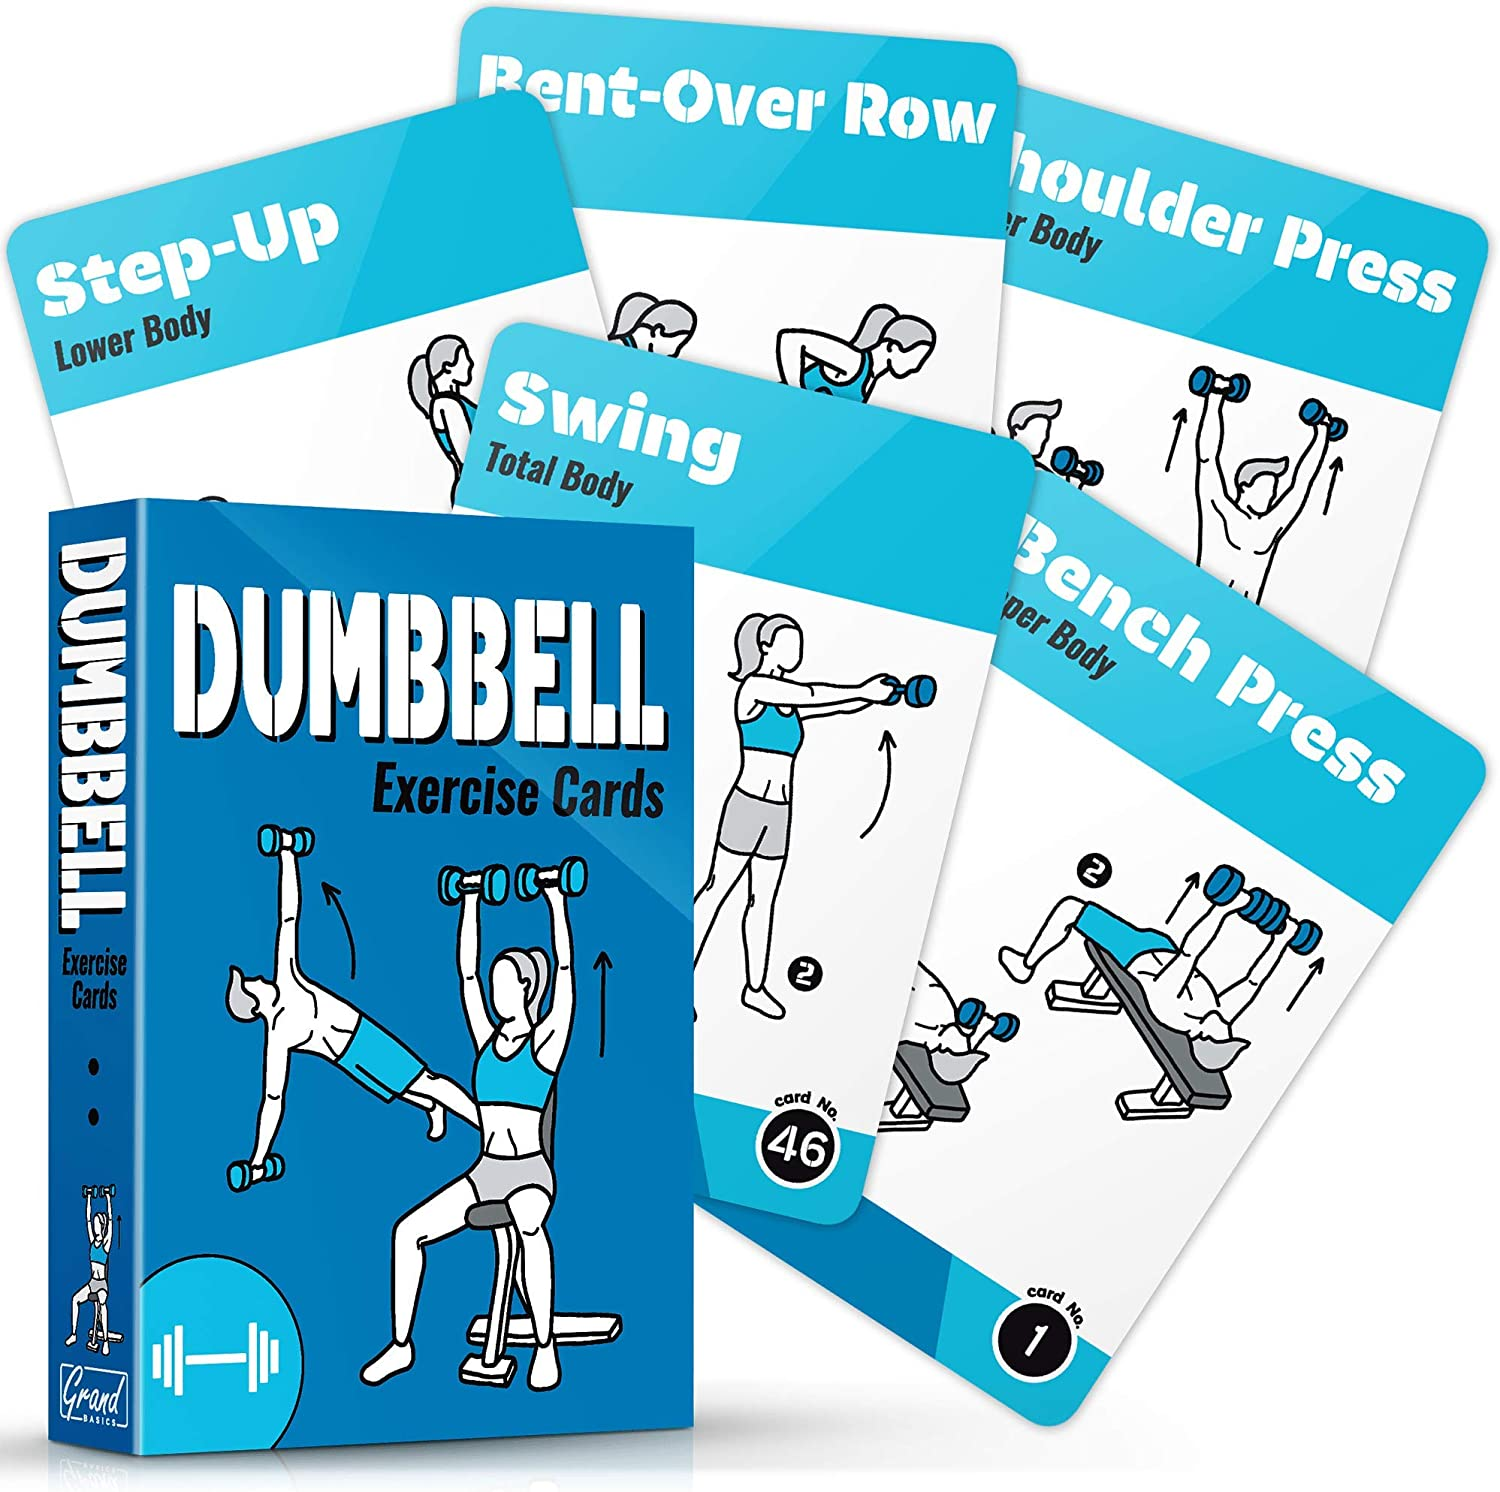 GRAND BASICS Dumbbell Workout Cards Deck – Perfect Large Size Dumbbell Exercise Cards for Home or Travel – Fitness Cards Includes 50 Different Exercises with Bonus Cards